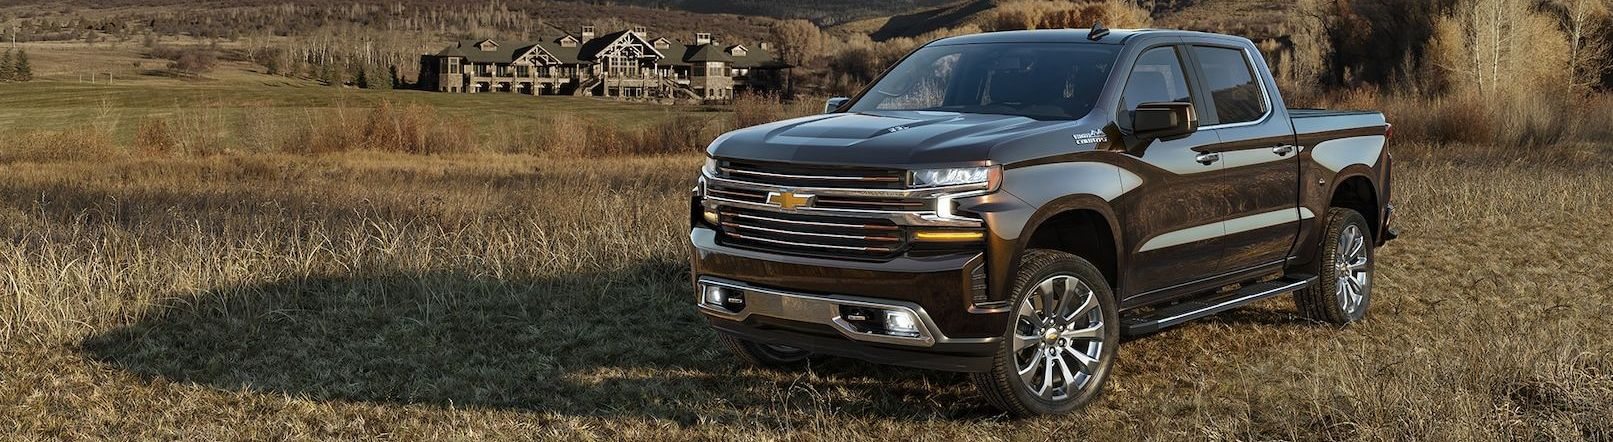 2019 Chevrolet Silverado 1500 for Sale near Lapeer, MI